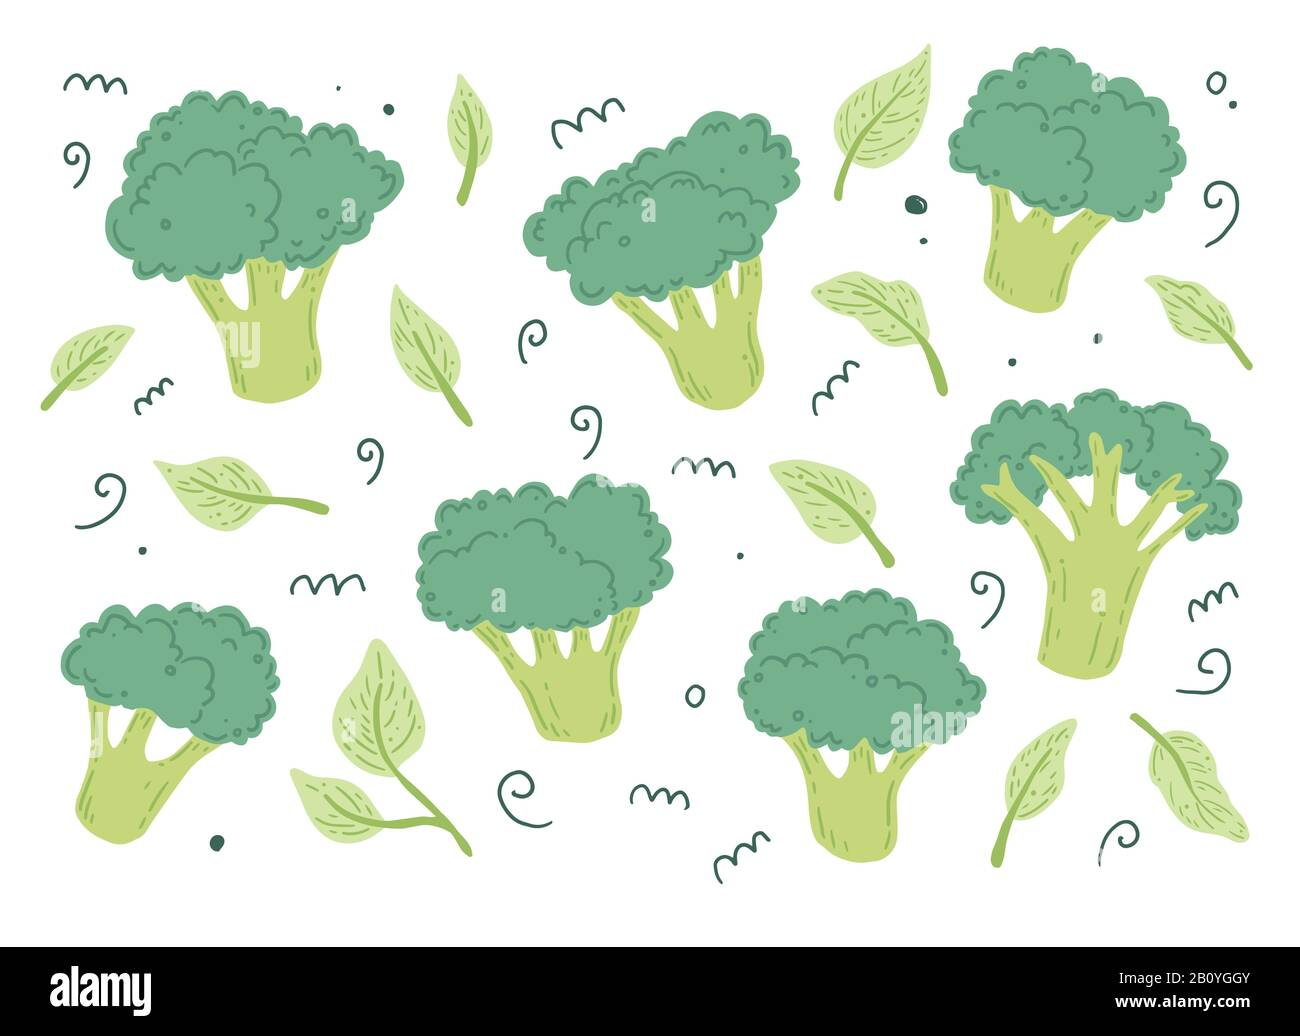 broccoli vector illustration isolated set concept of healthy food vegetable for background icon design broccoli have abstract cartoon hand drawn style stock vector image art alamy https www alamy com broccoli vector illustration isolated set concept of healthy food vegetable for background icon design broccoli have abstract cartoon hand drawn style image344813083 html